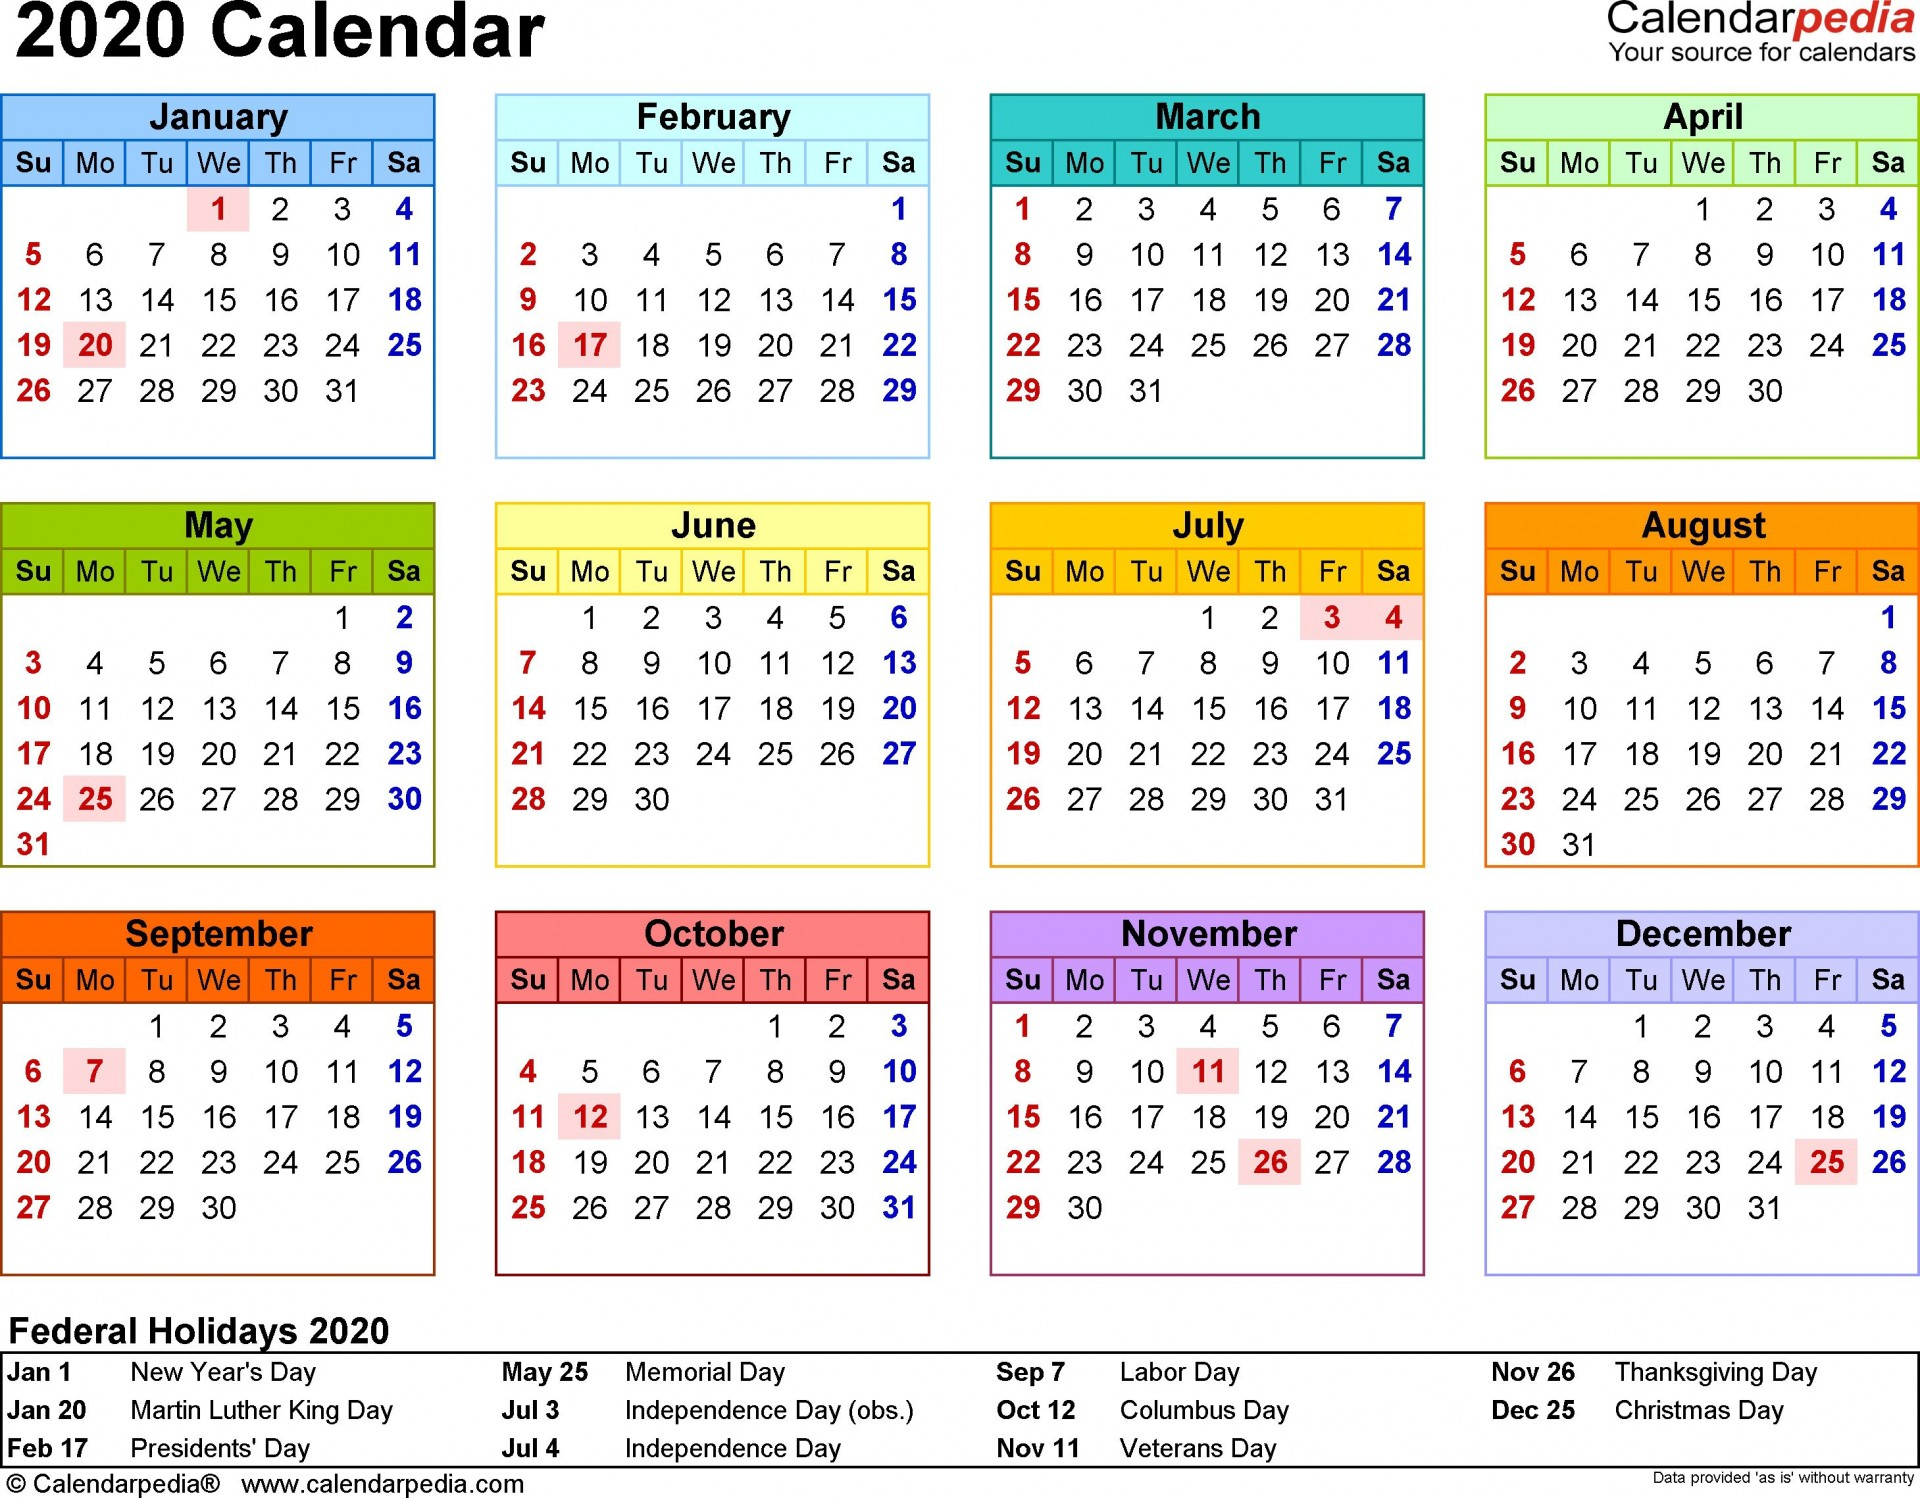 000 Awful Microsoft Calendar Template 2020 Picture  Publisher Office Free1920